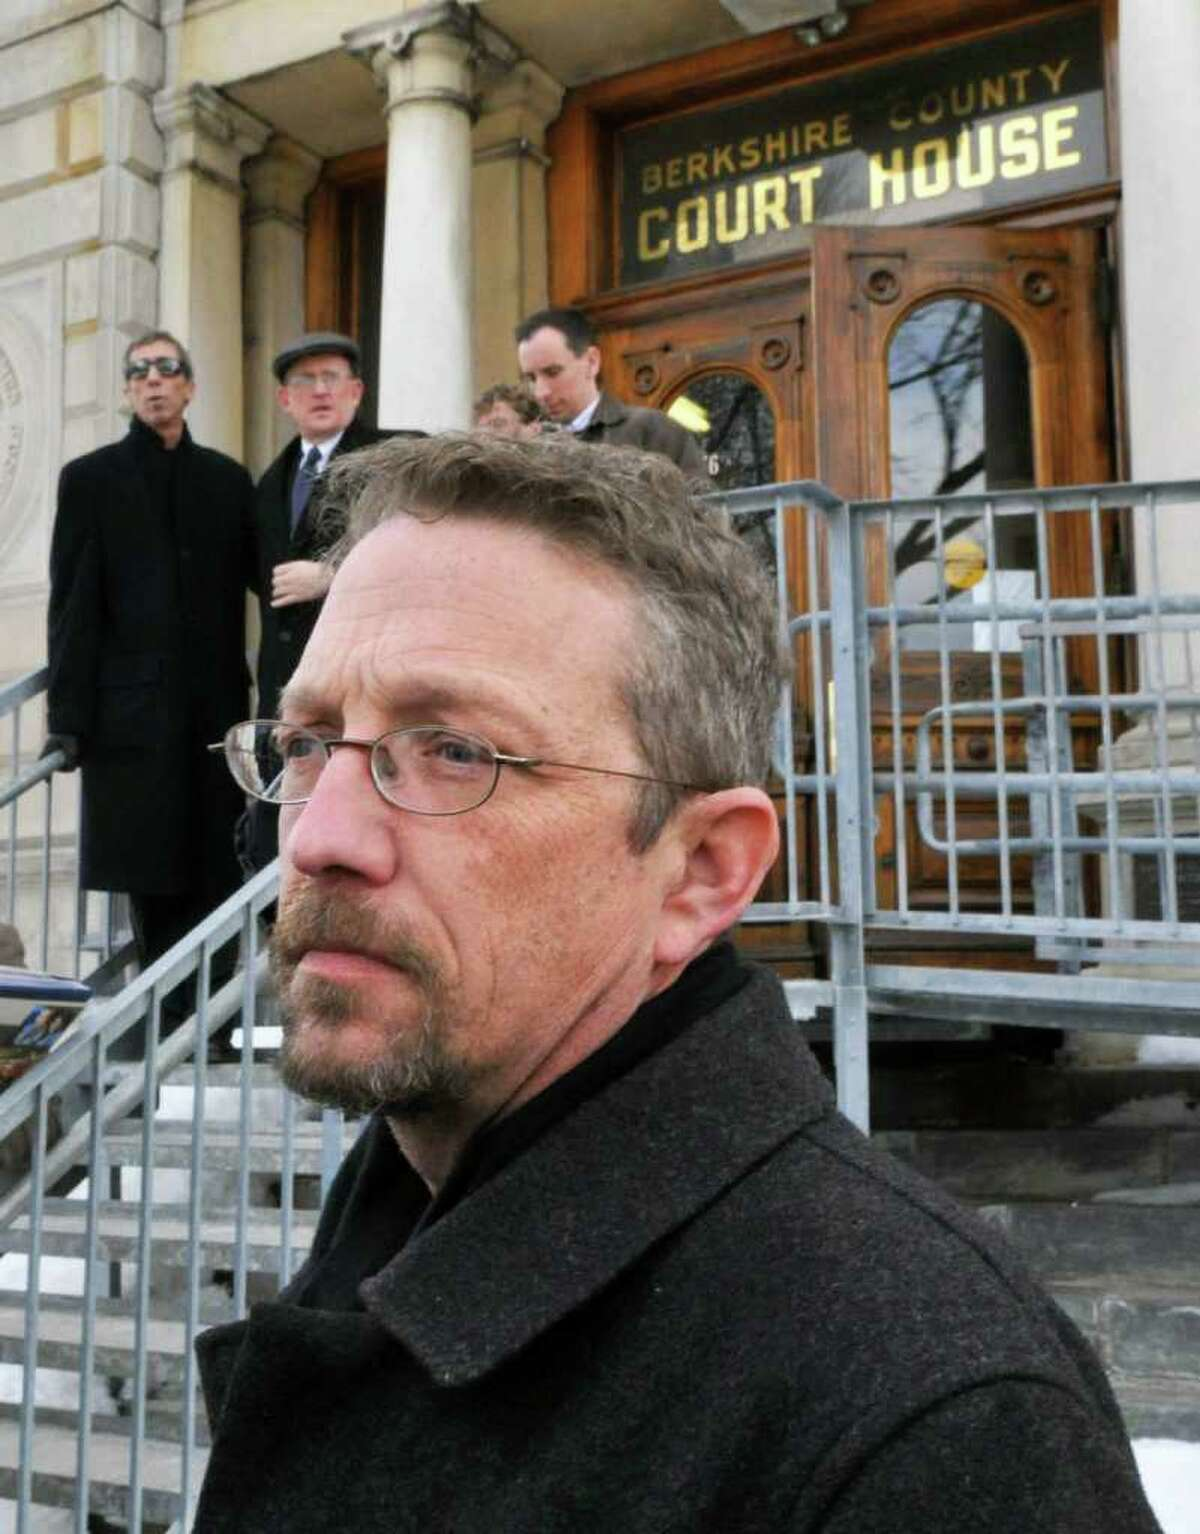 Abuse victim Michael Flynn of Watervliet stands outside a Berkshire County courthouse last year following the sentencing of former priest Gary Mercure for raping altar boys in the 1980s. Flynn, who was a victim of Mercure's, attended St. Teresa of Avila elementary school in Albany. Flynn said a school janitor accused of sexual abuse had exposed himself to Flynn, then in elementary school, during an unsettling encounter in a locker room. (John Carl D'Annibale / Times Union)